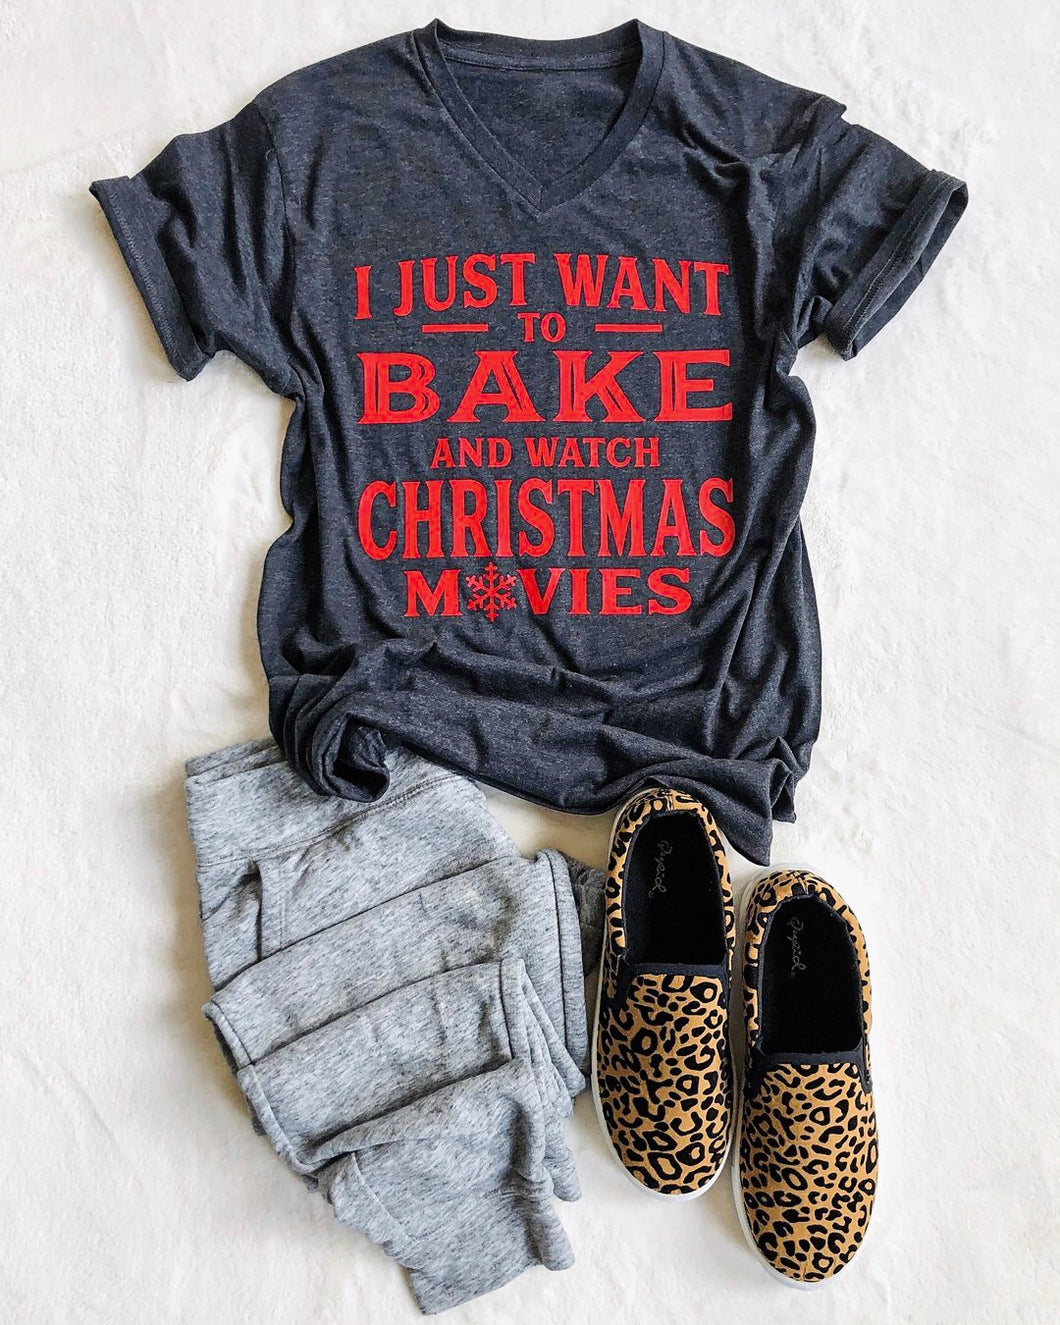 I just want to bake and watch T-shirt